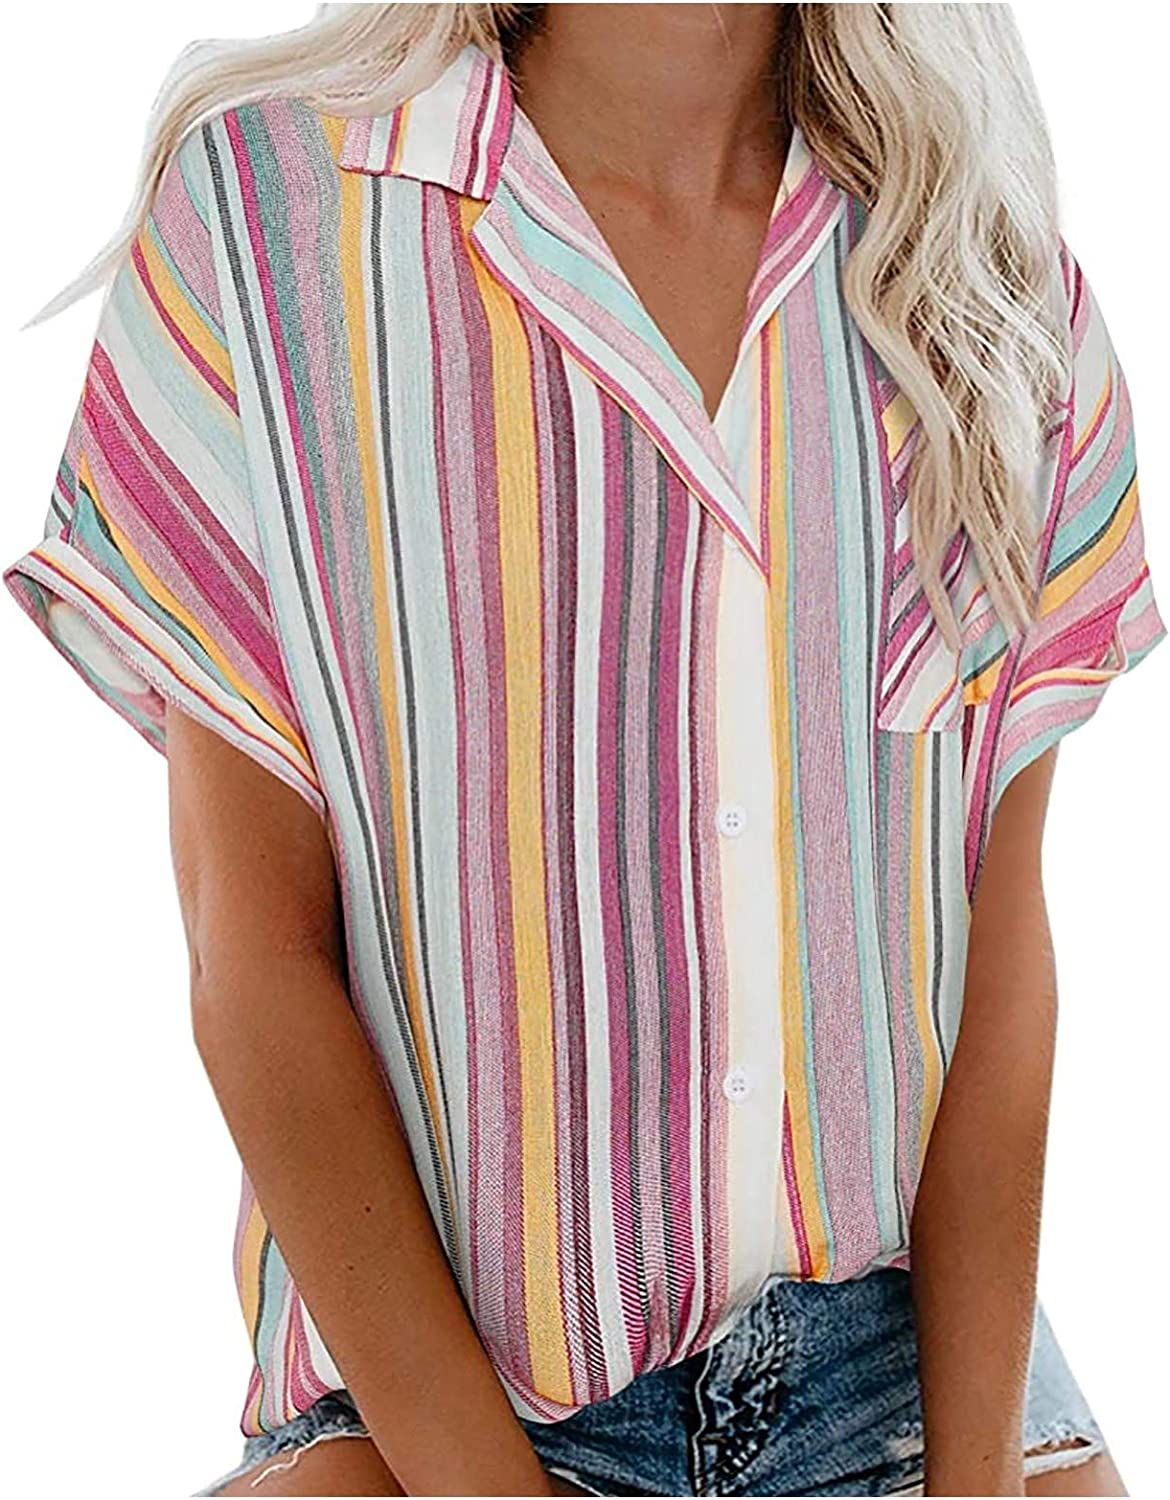 Forwelly Button Down Shirt for Women Trendy Stripe Print V Neck Tunic Top Summer Short Sleeve T Shirt Blouse